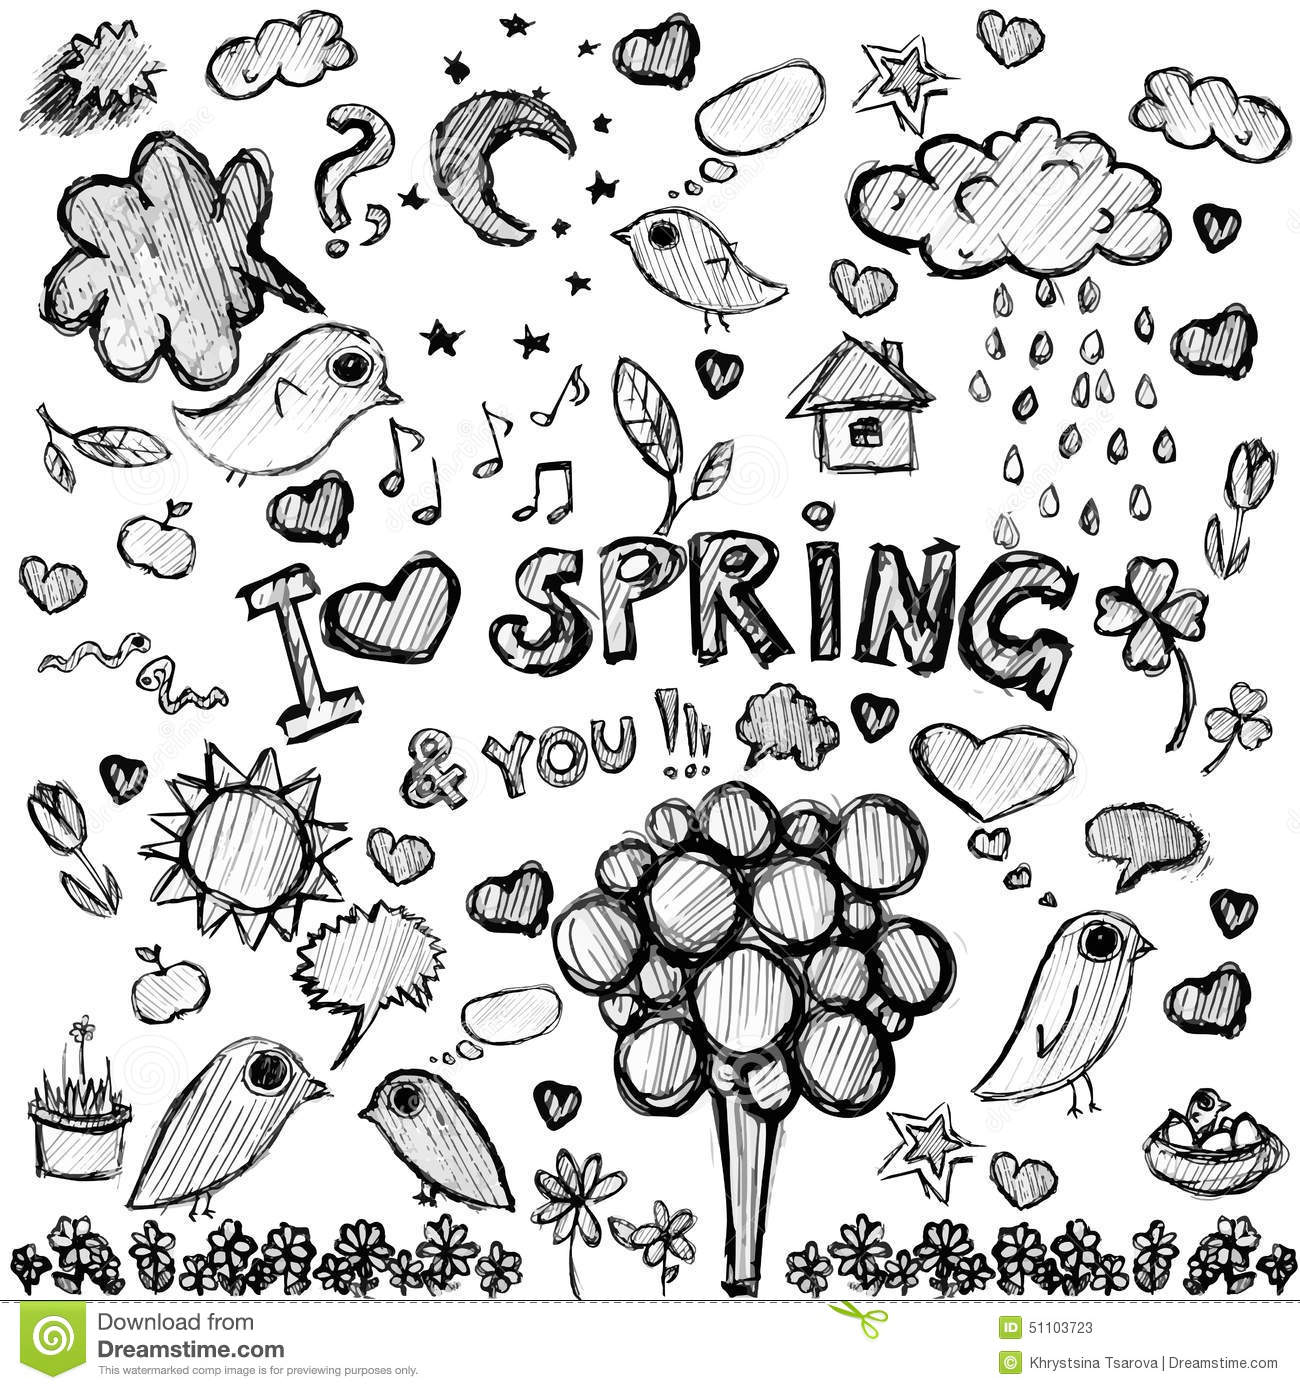 Season black and white. 2 clipart spring